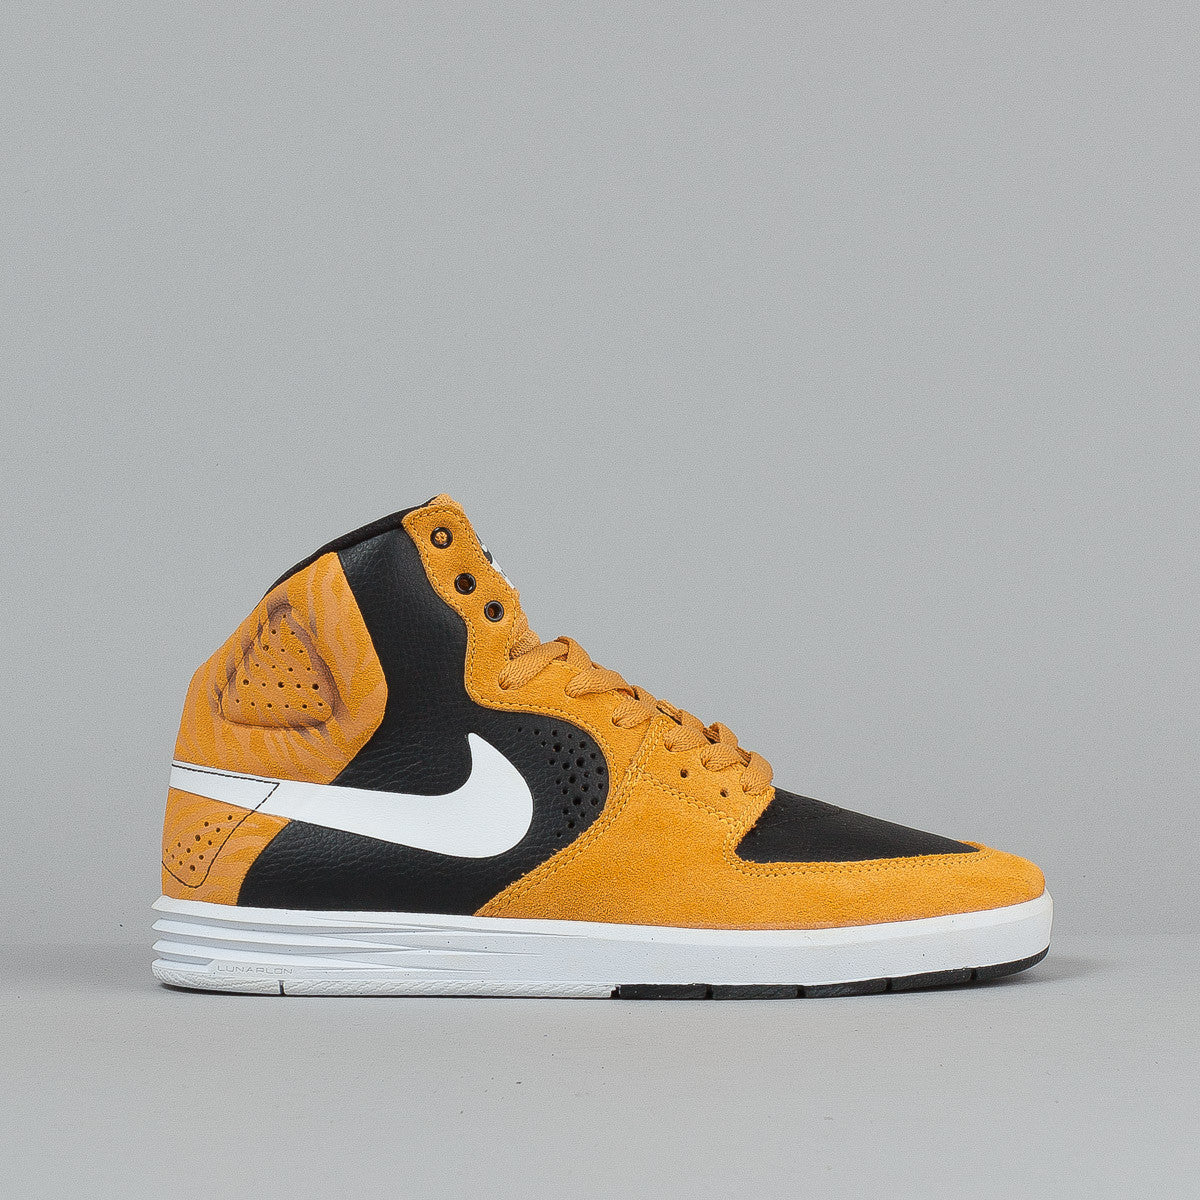 Nike Sb Paul Rodriguez 7 High Laser Orange